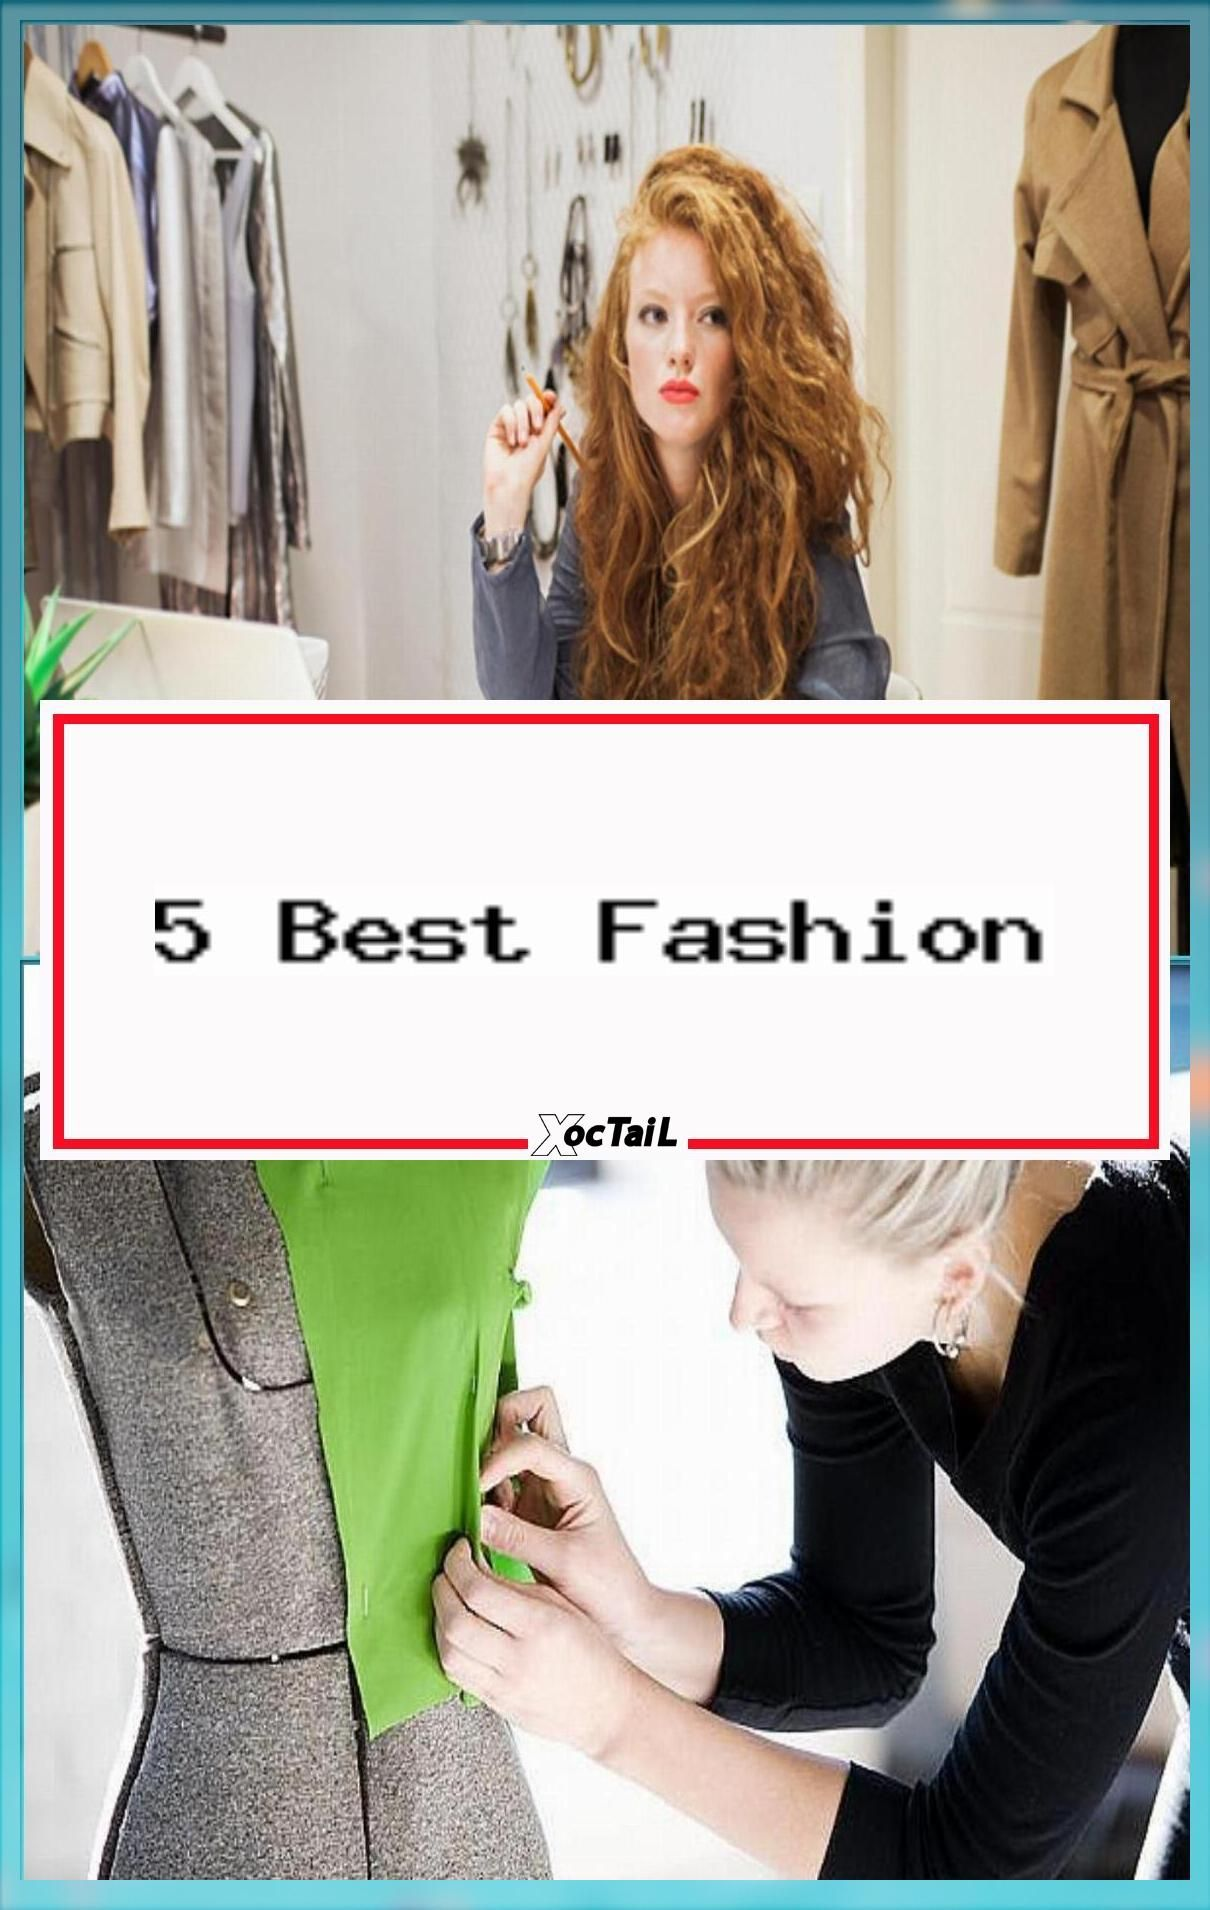 5 Best Fashion Designers Of The World Worlds Top Fashion Designer Job Description Clothes Designers Clothin In 2020 Fashion Designers Famous Famous Fashion Fashion